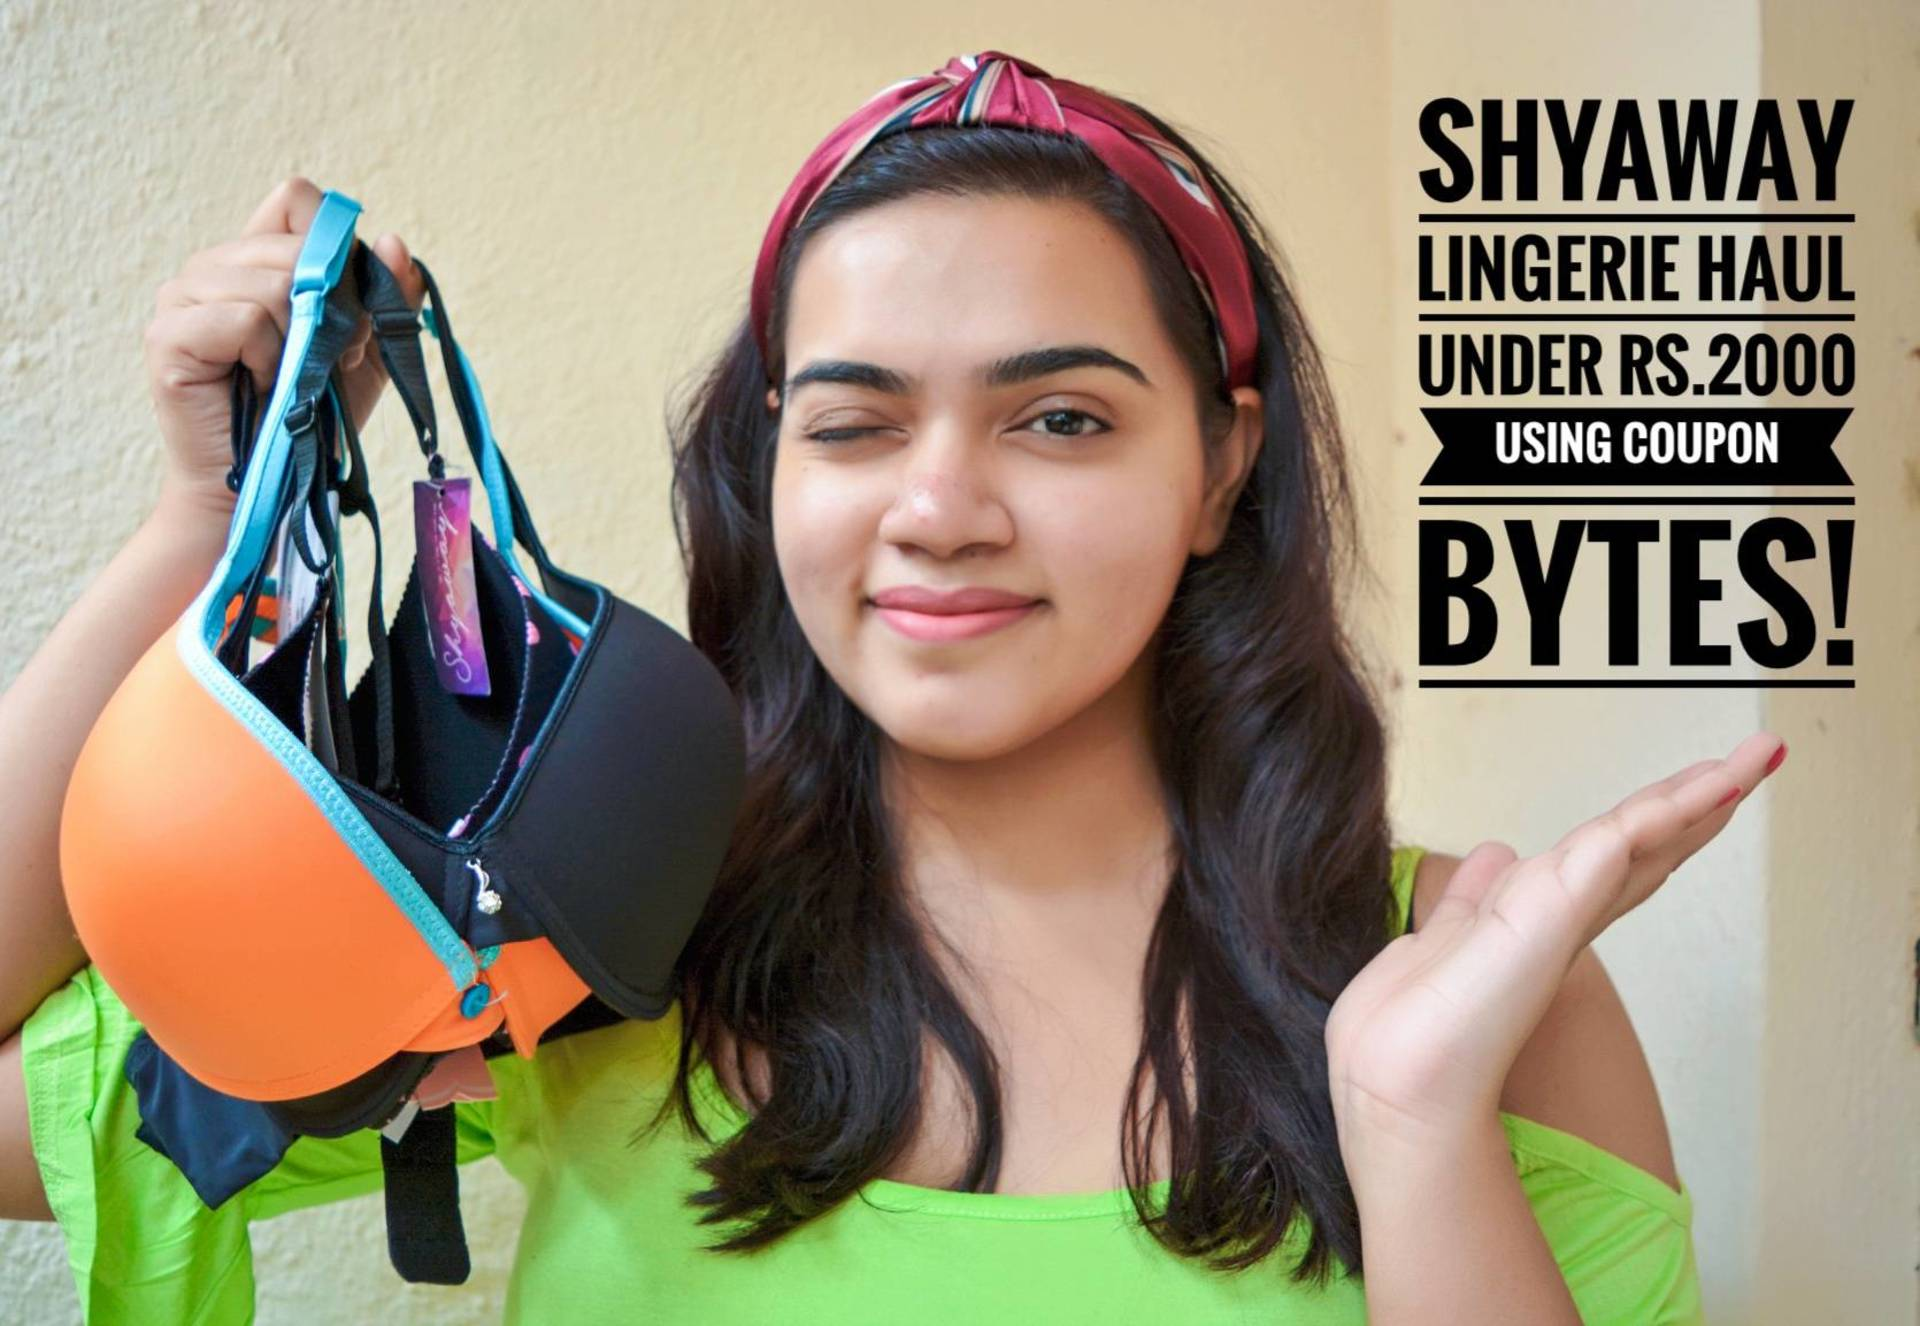 Shyaway Lingerie Haul under Rs.2000! image